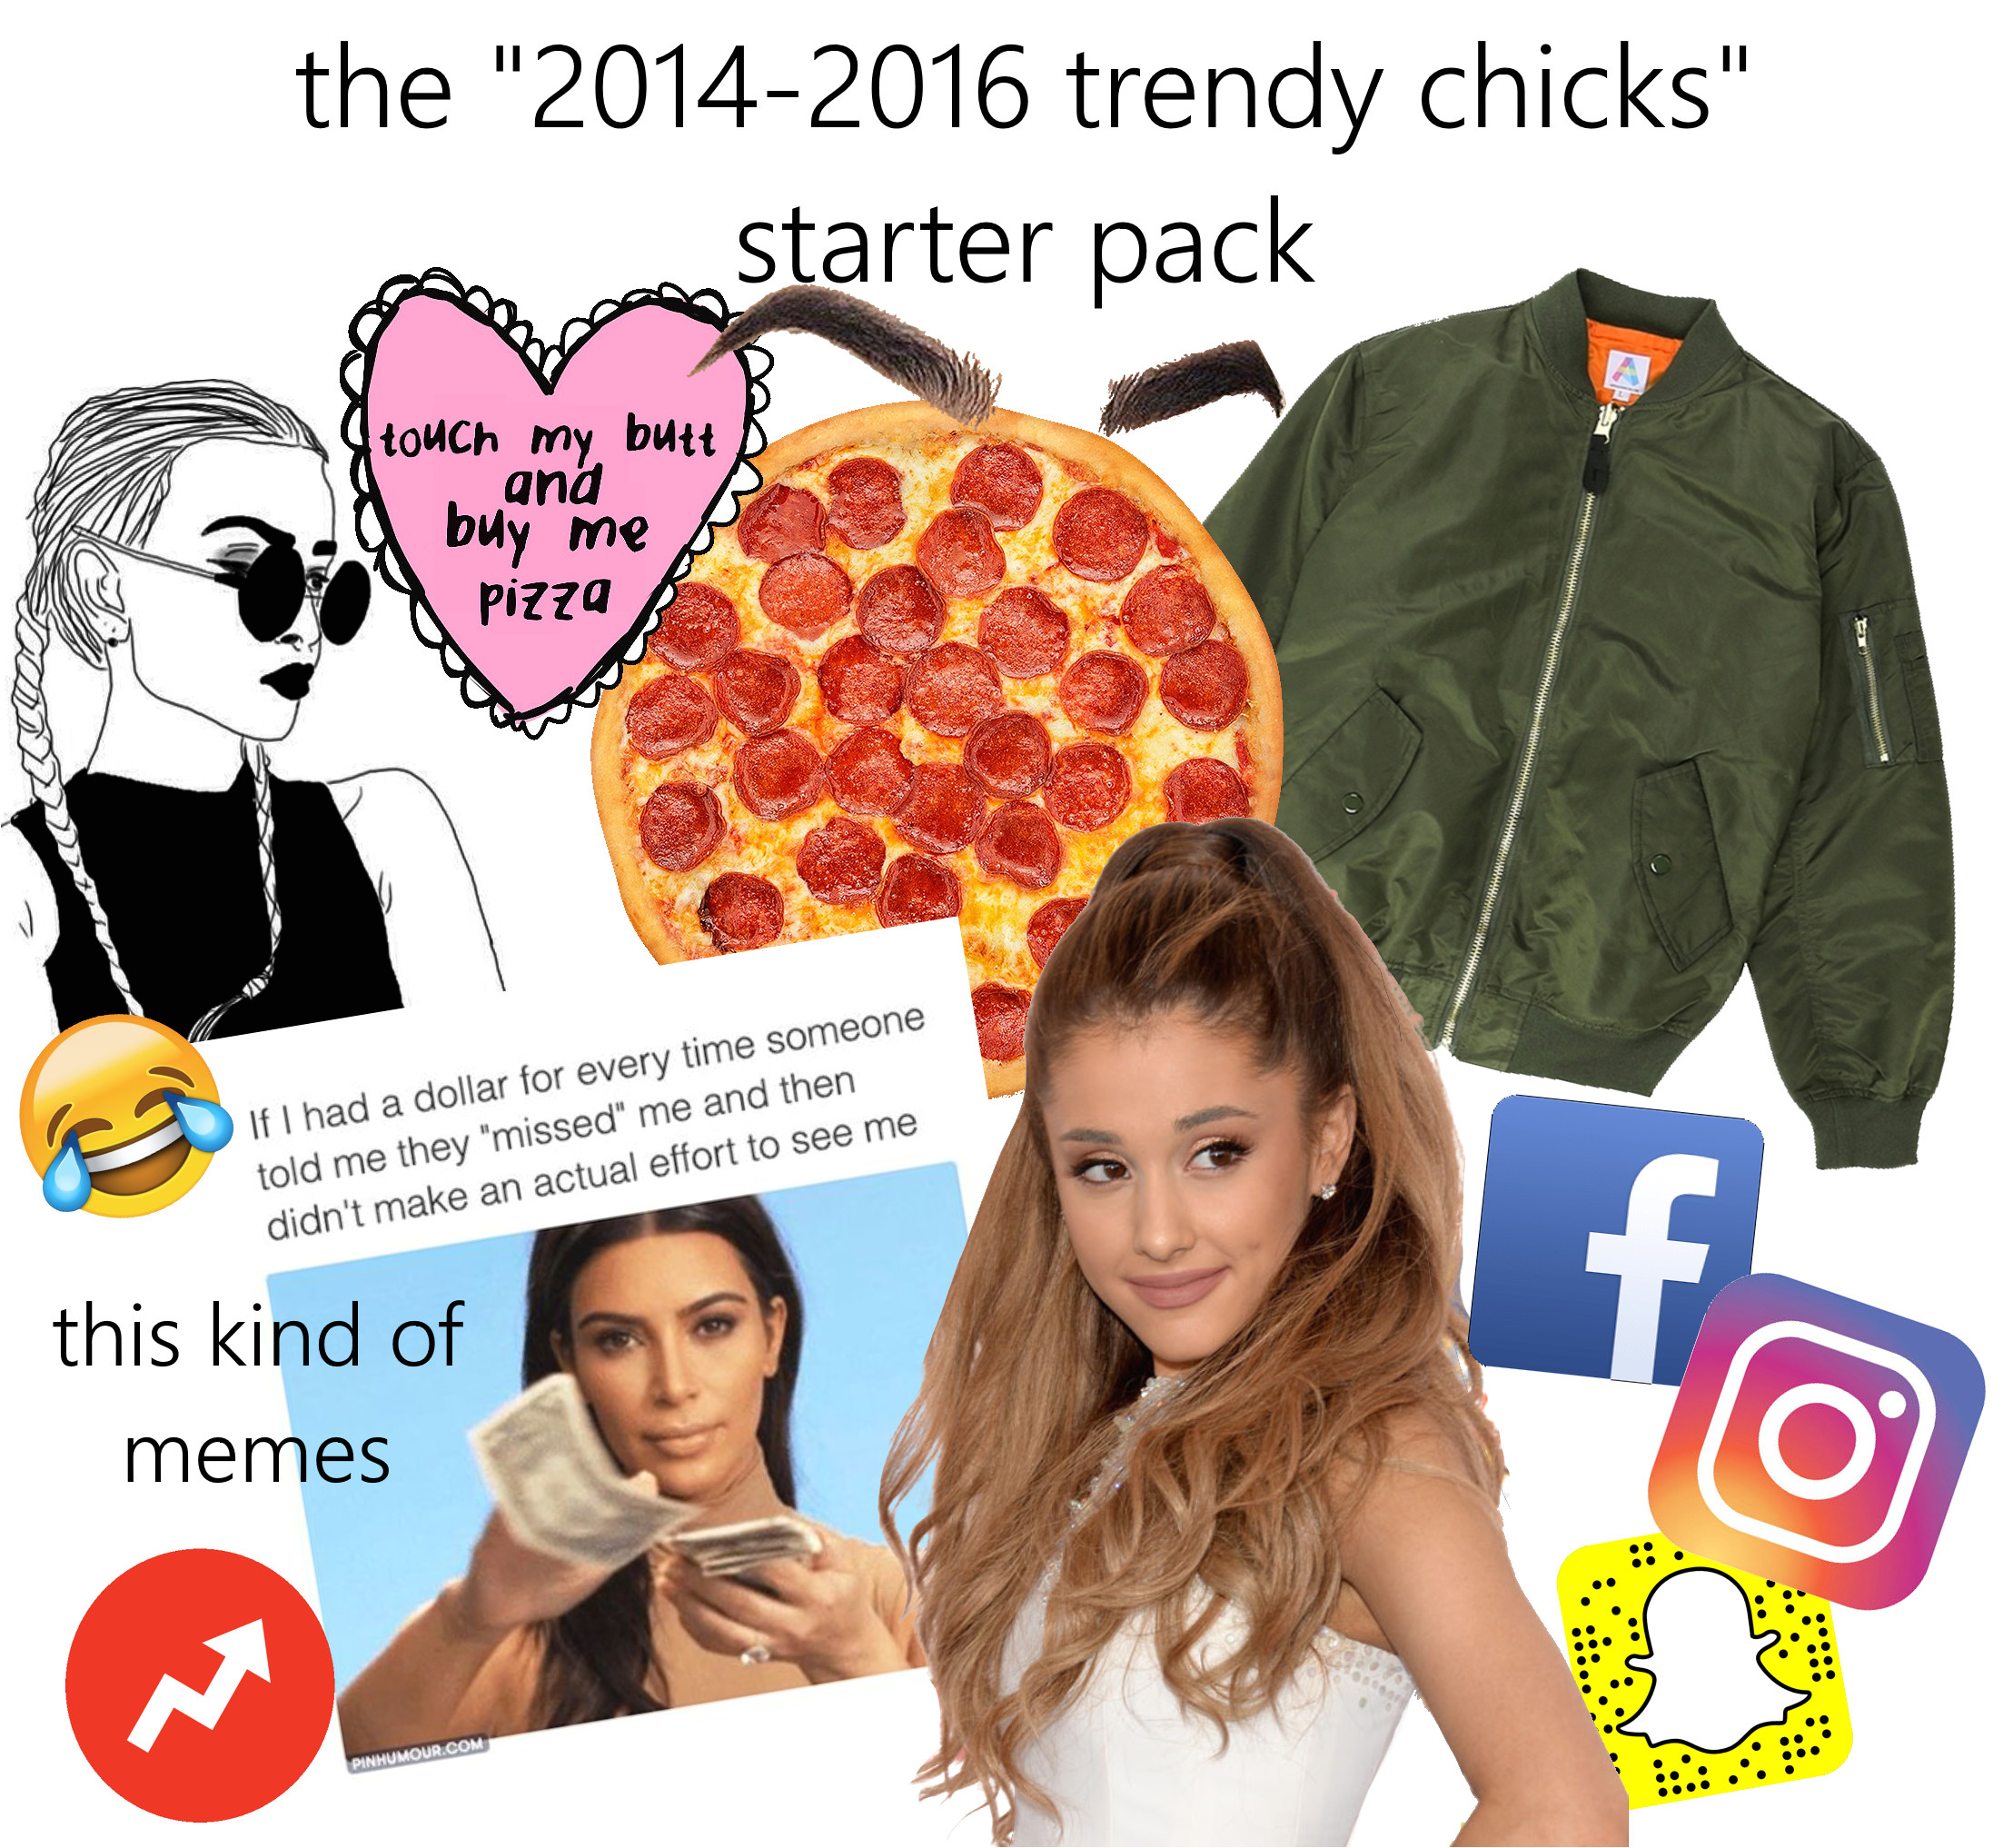 the trendy chicks in 2014 2016